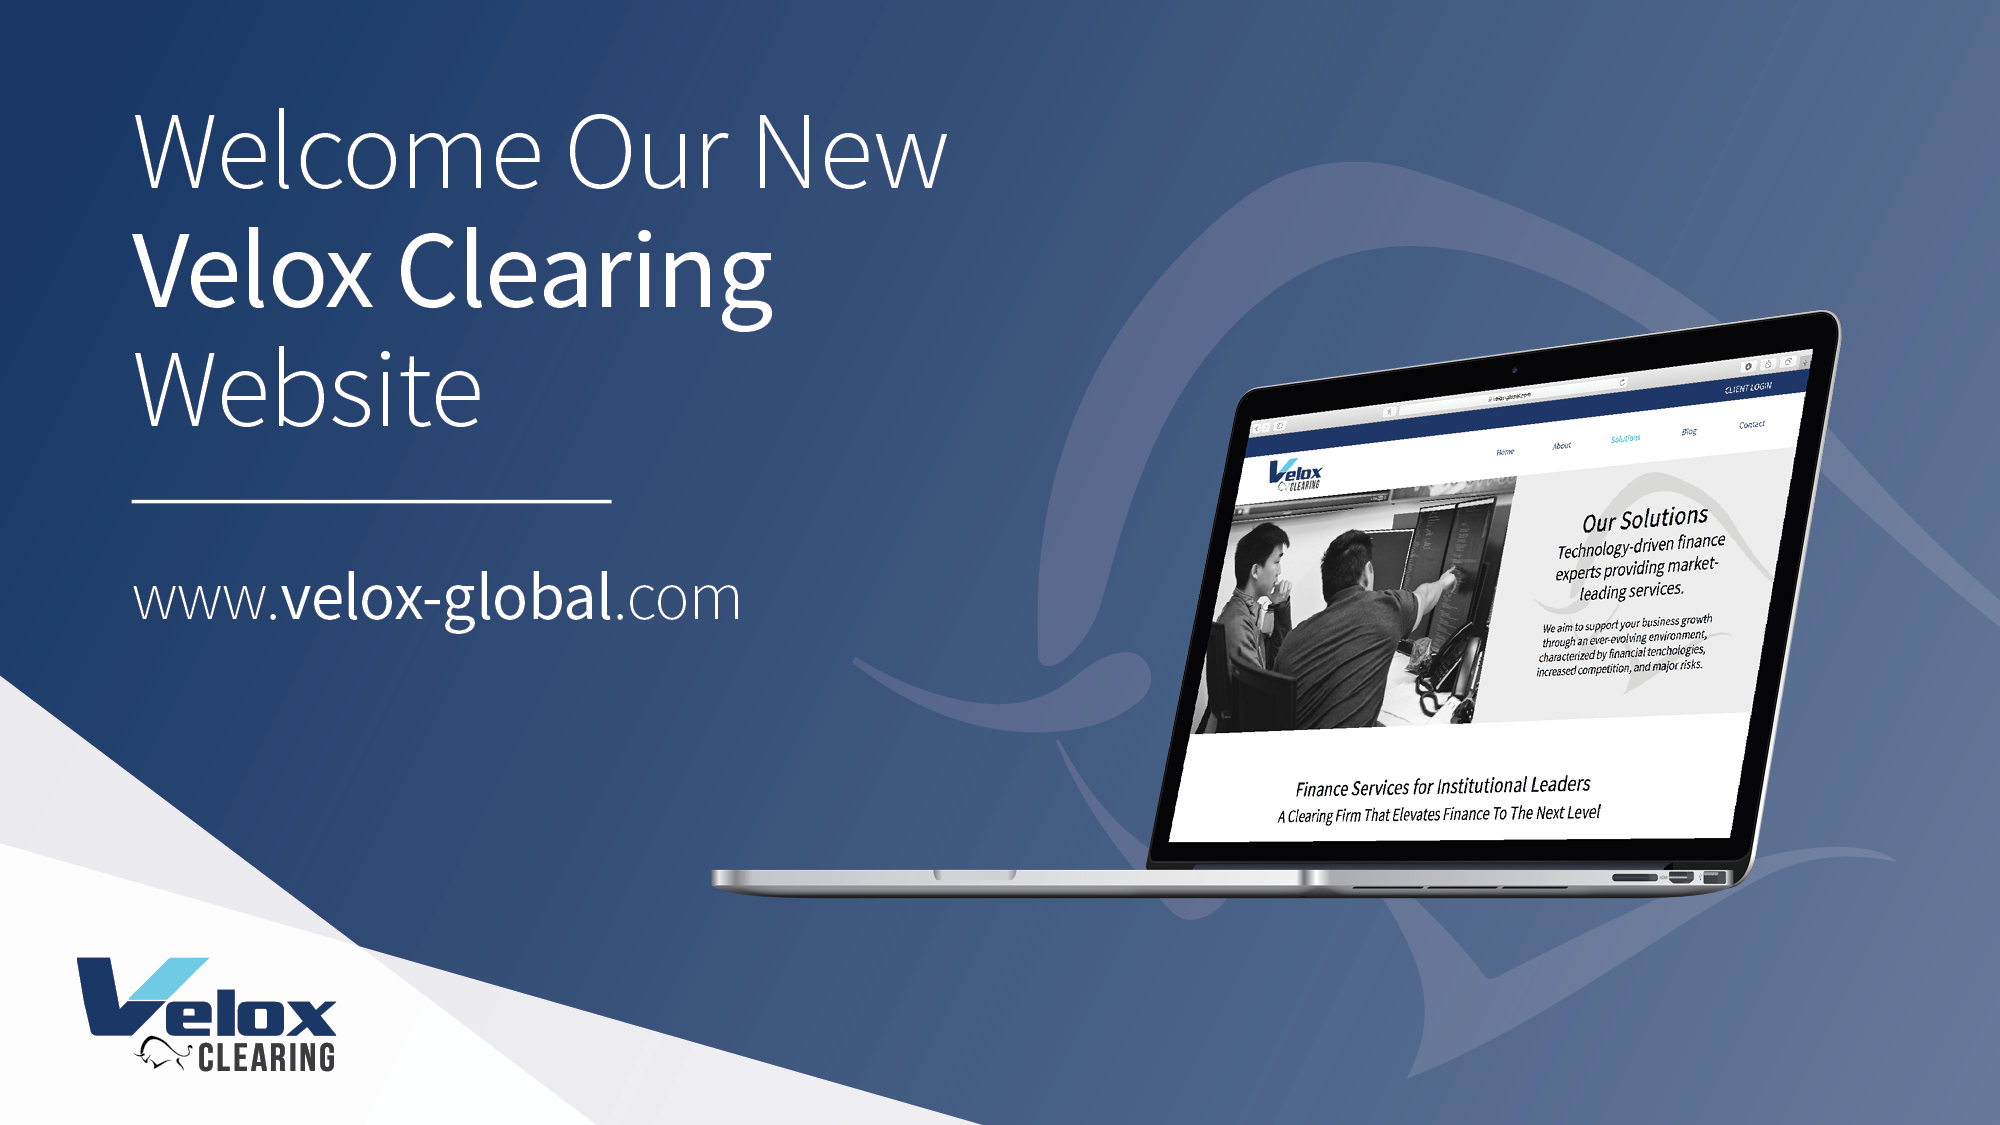 new-website-velox-clearing-firm